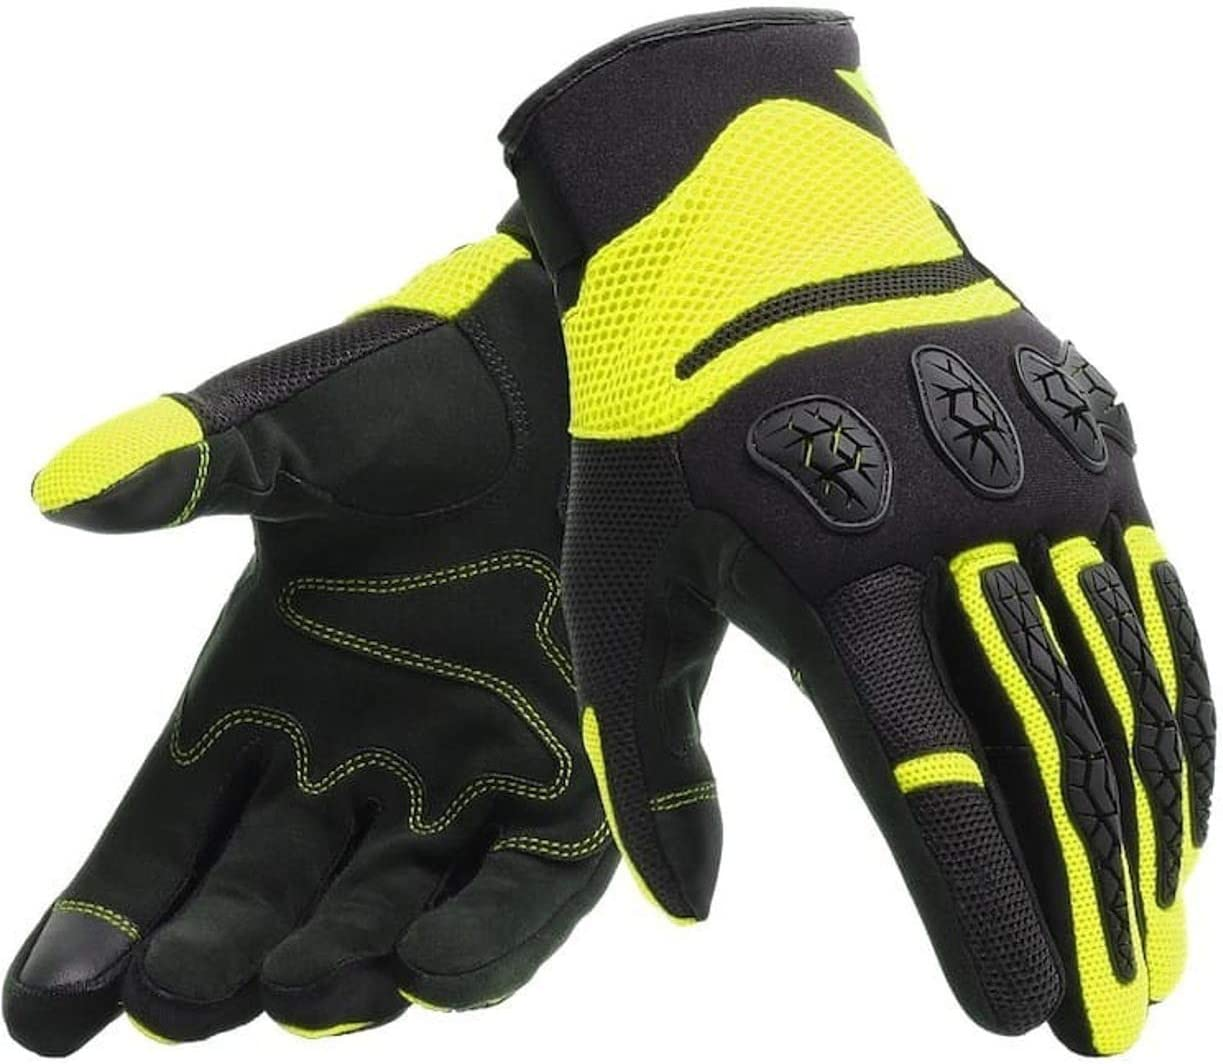 Mejores Guantes Dainese verano